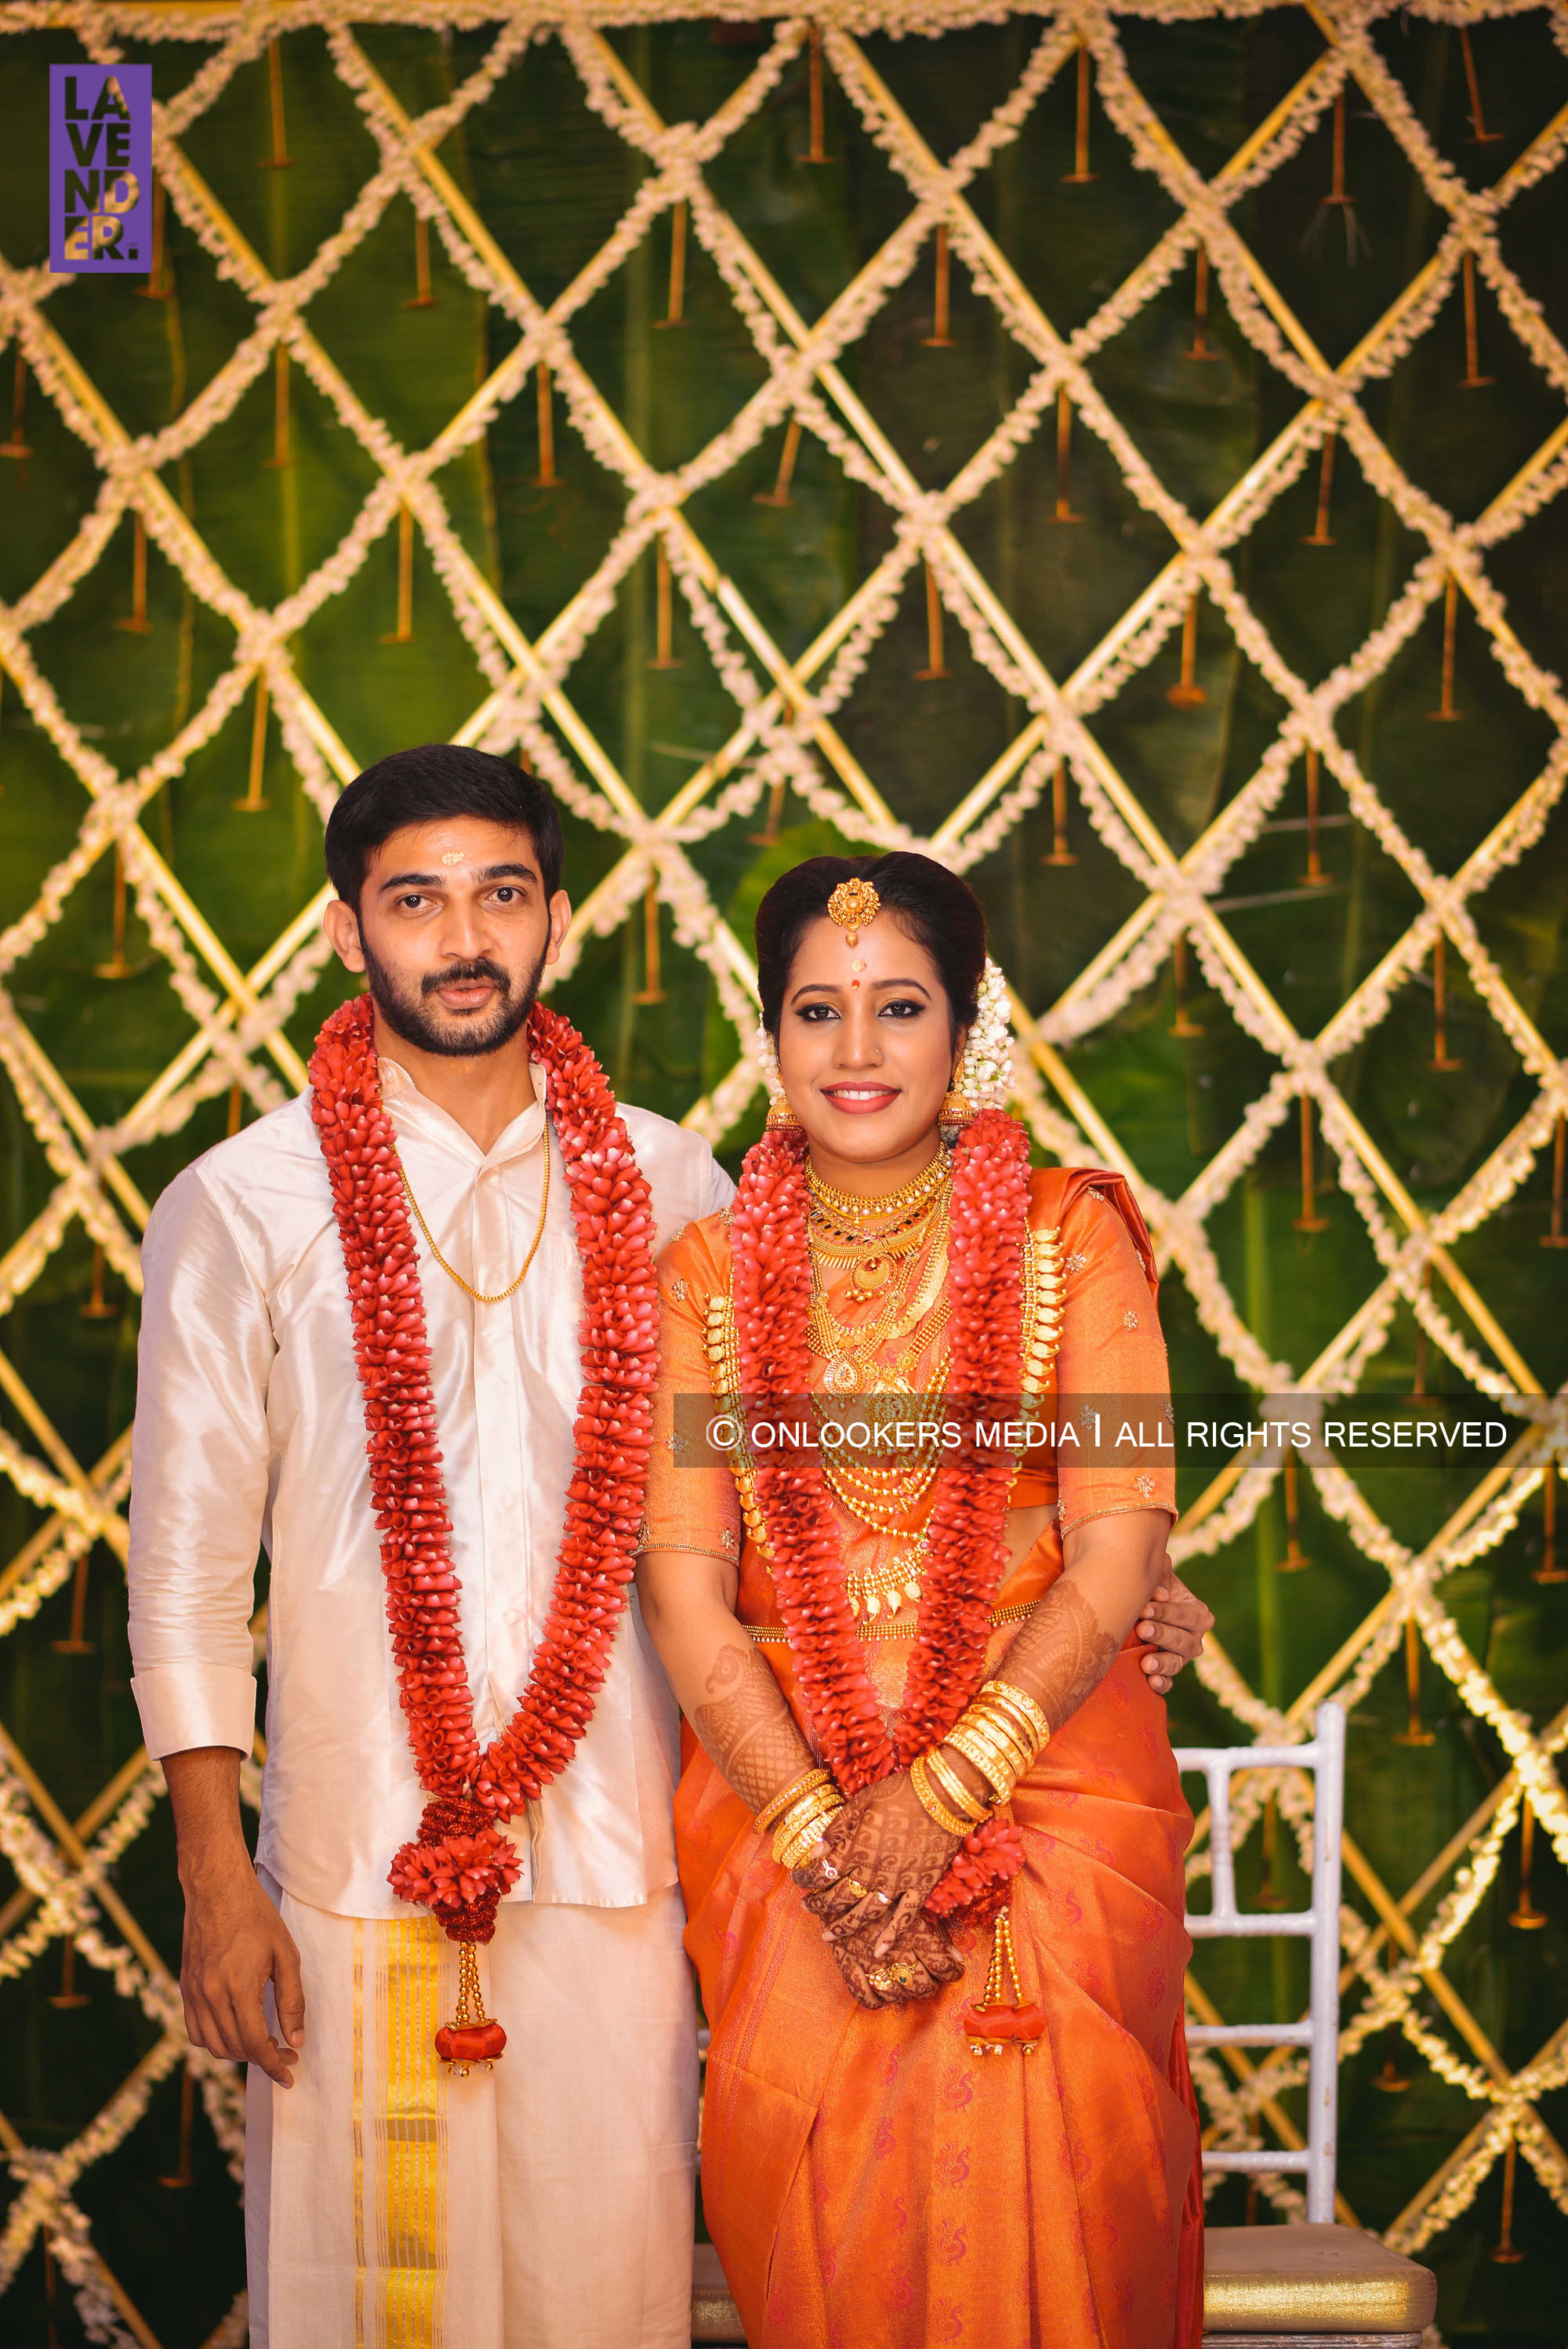 http://onlookersmedia.in/wp-content/uploads/2018/05/sreejith-vijay-wedding-stills-images-79.jpg